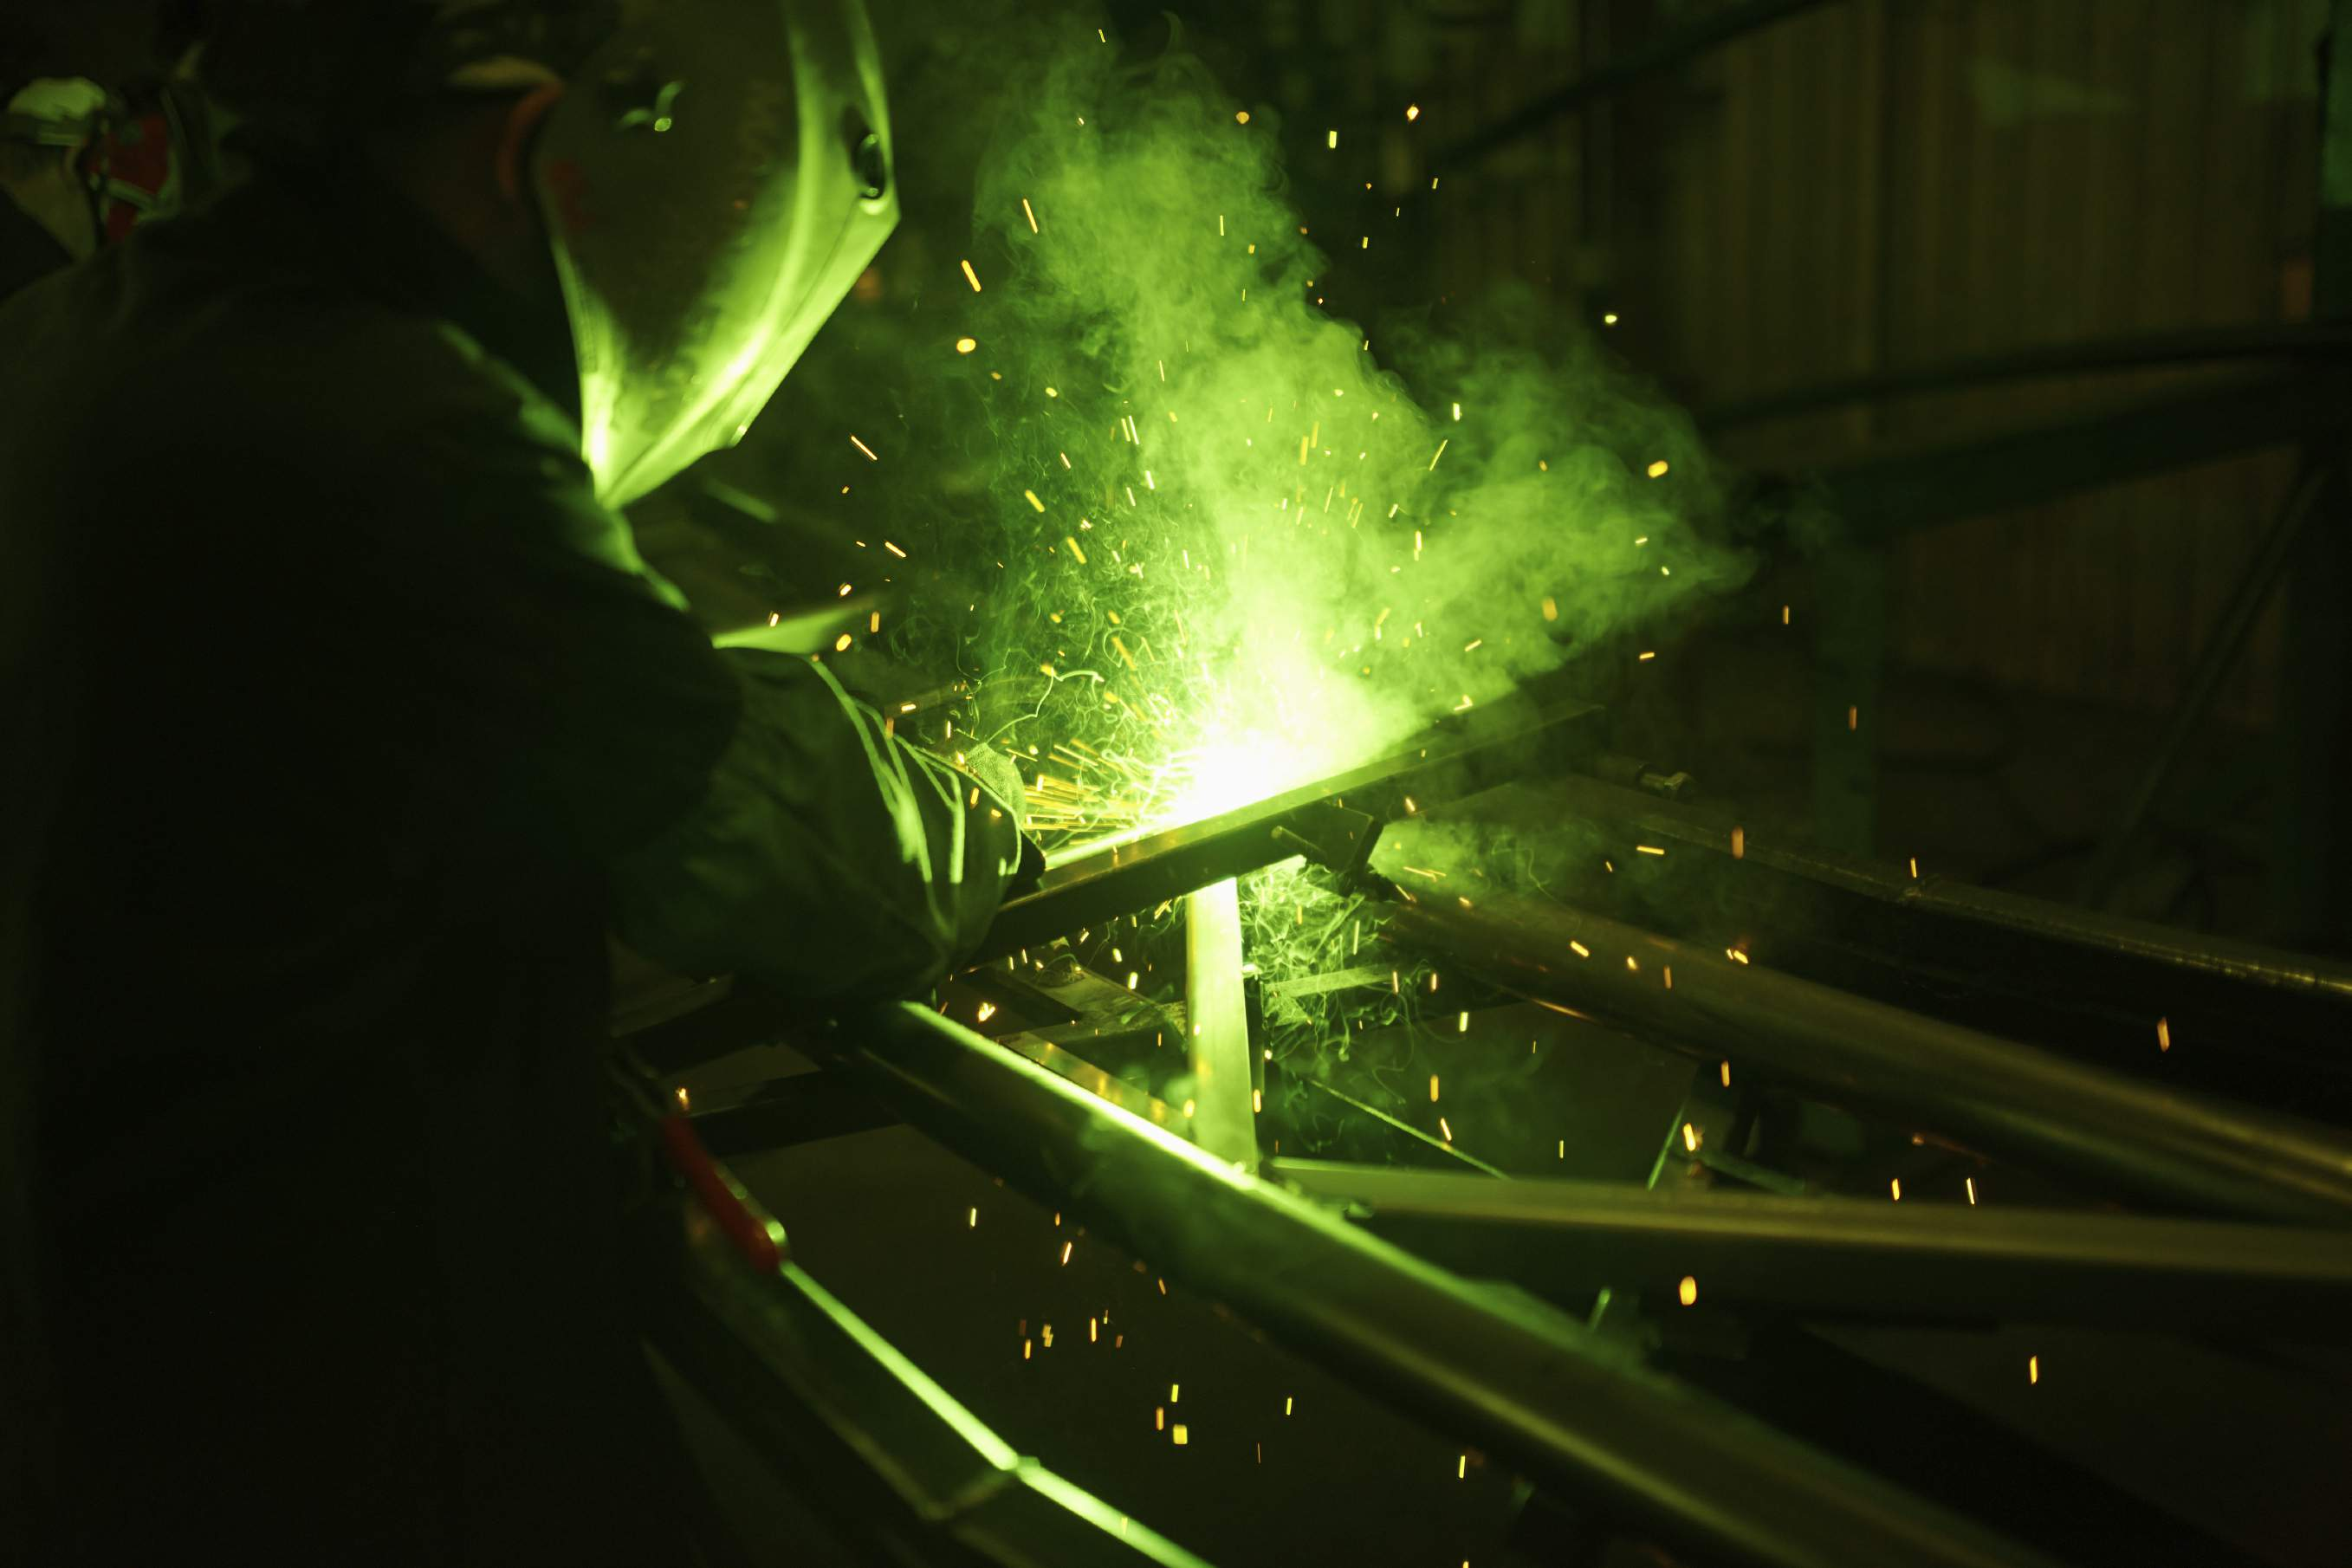 An image of a person welding the welder is illuminated by the green welding light, it looks really cool